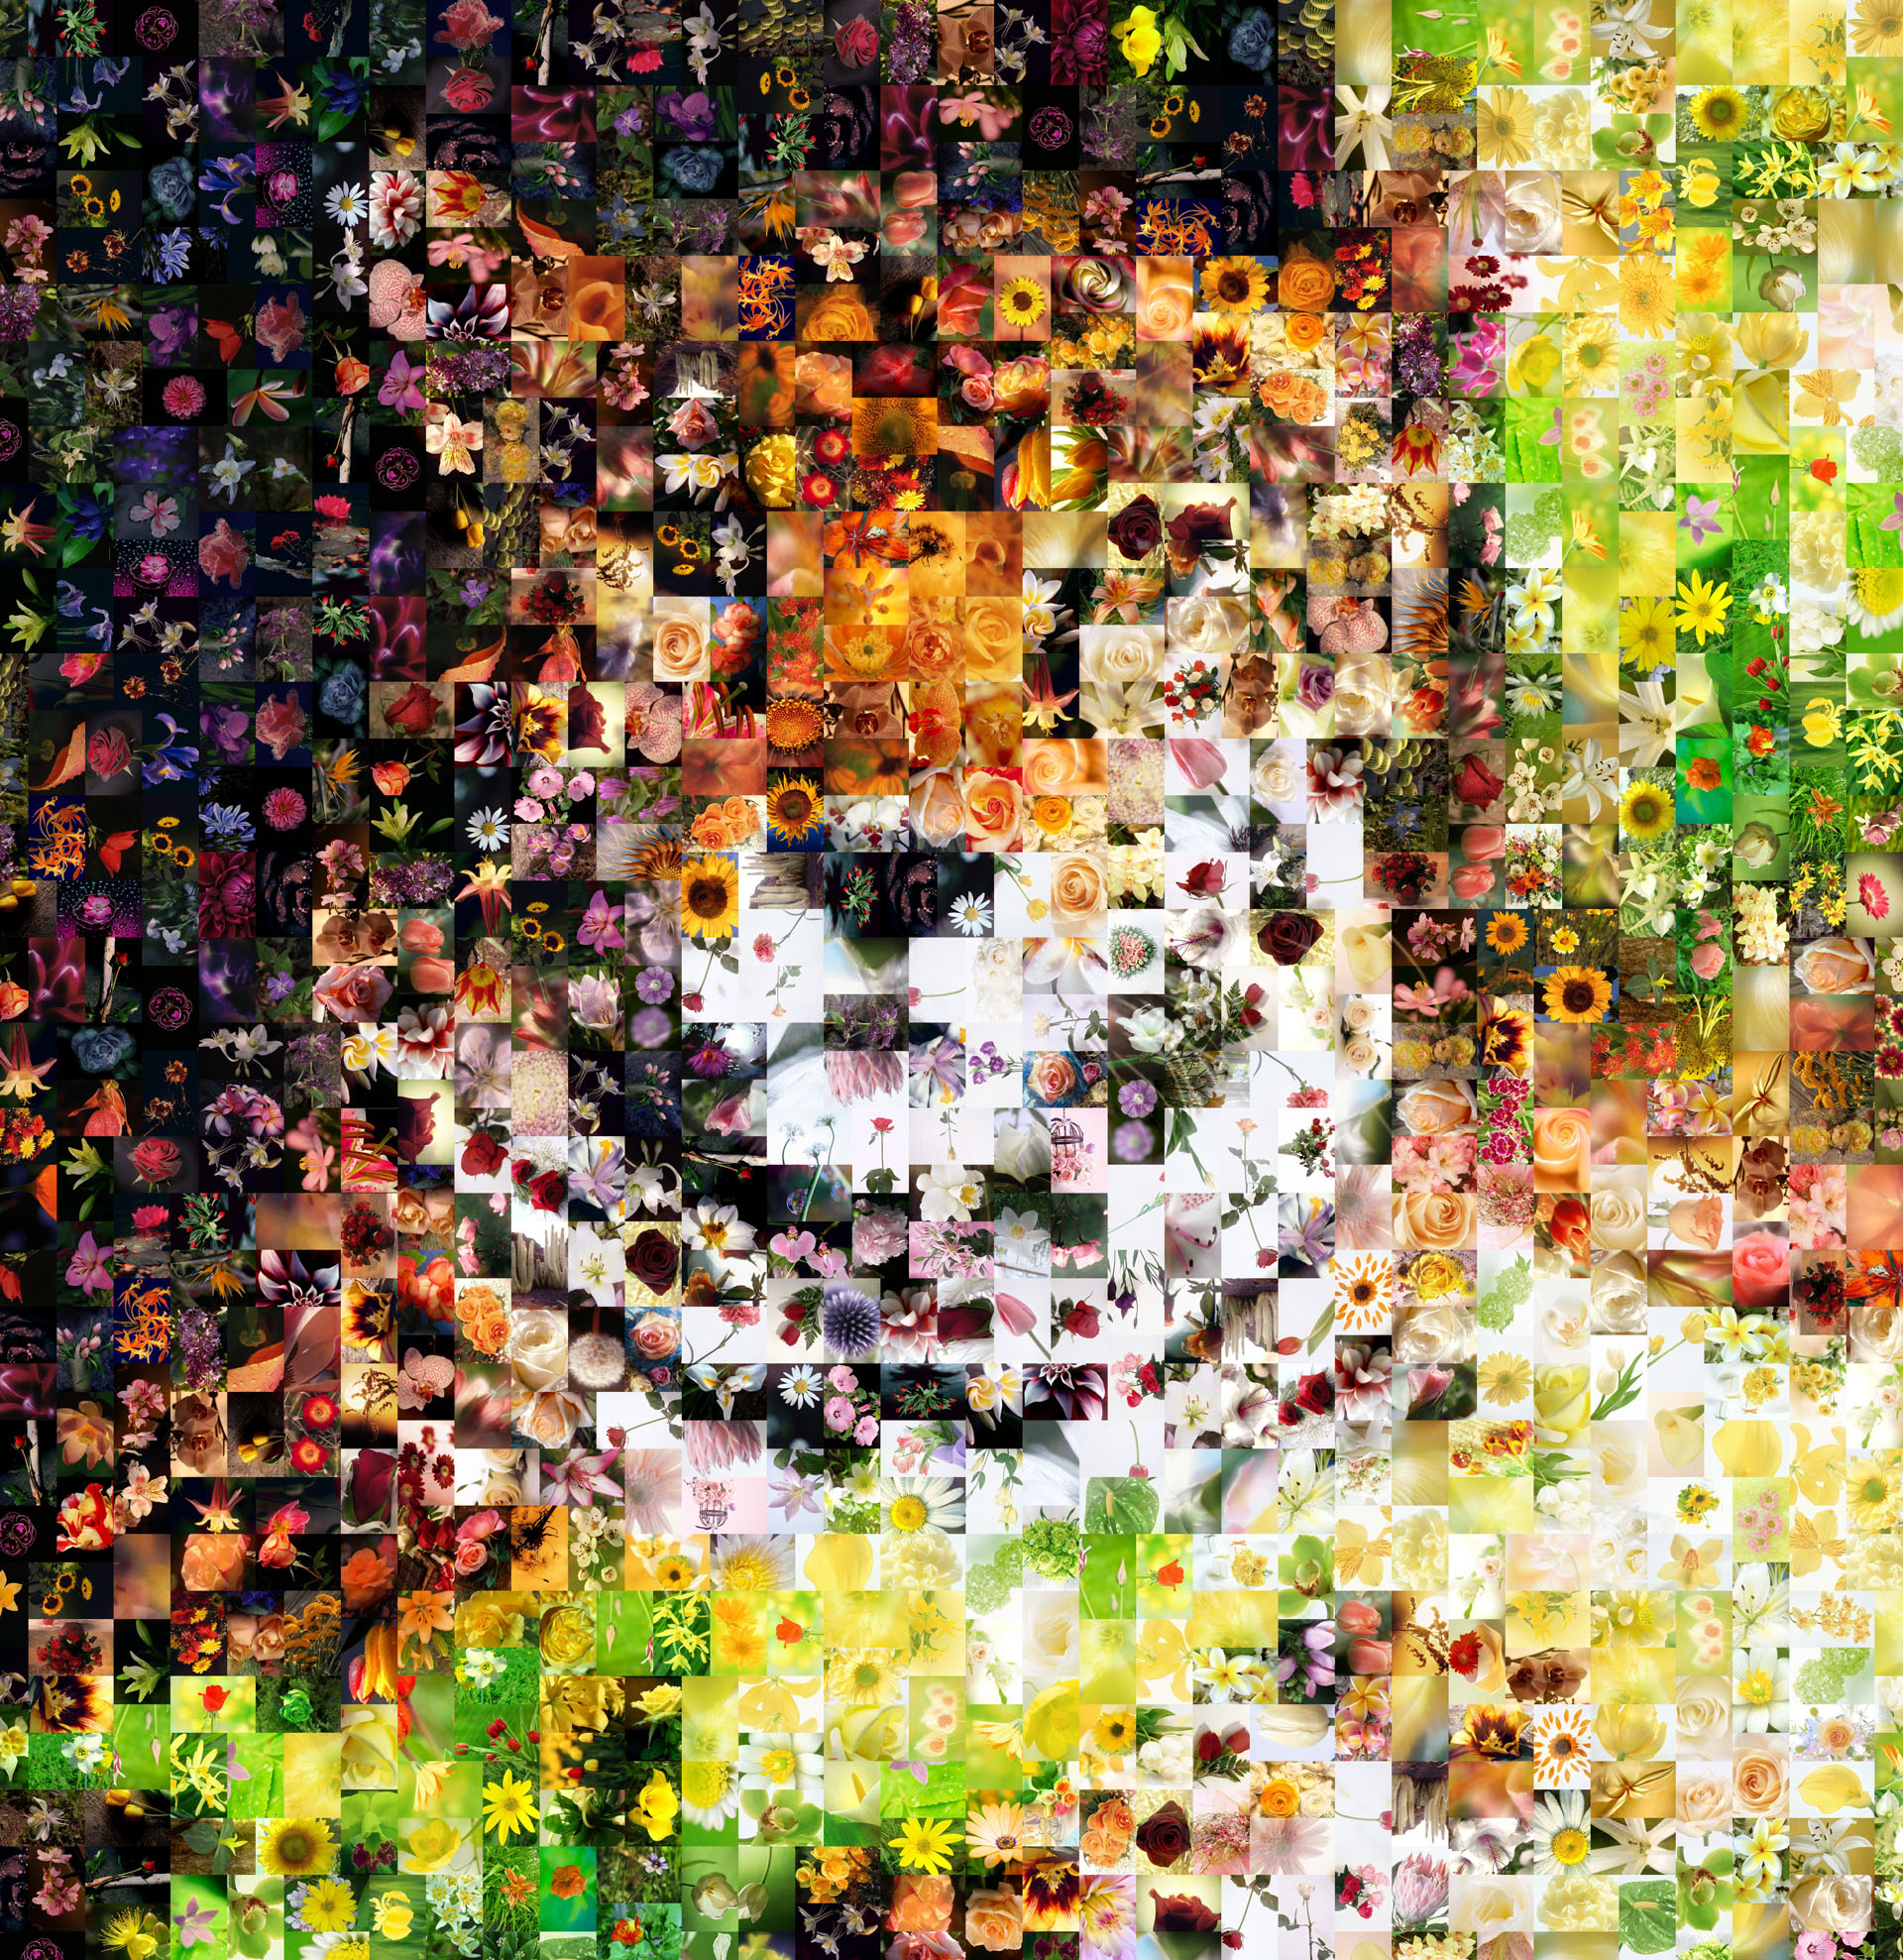 800 Pieces Lion Photomosaic Created Using The Program Artensoft Photo Mosaic Wizard And Cell Image Base With Flowers Download Full Size Extra Large